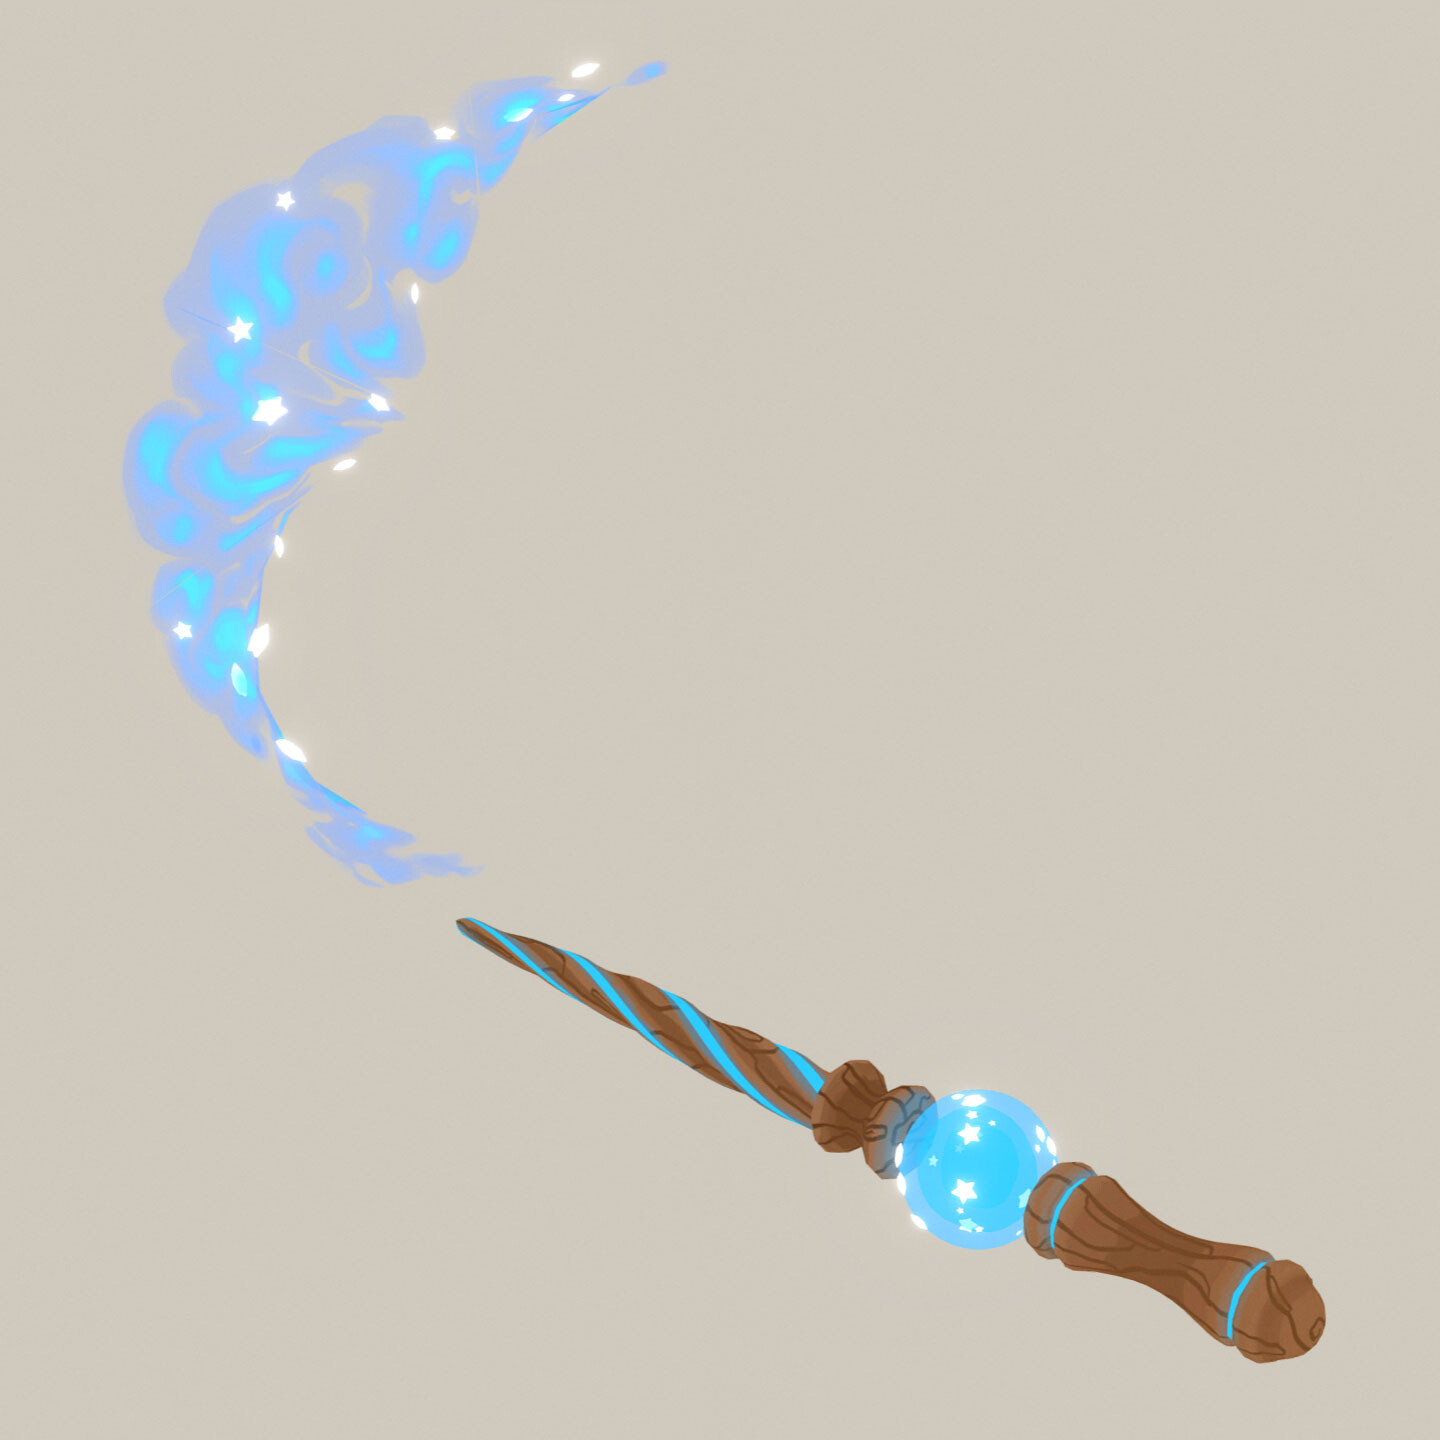 Magic Wand with Animated Spell-Casting